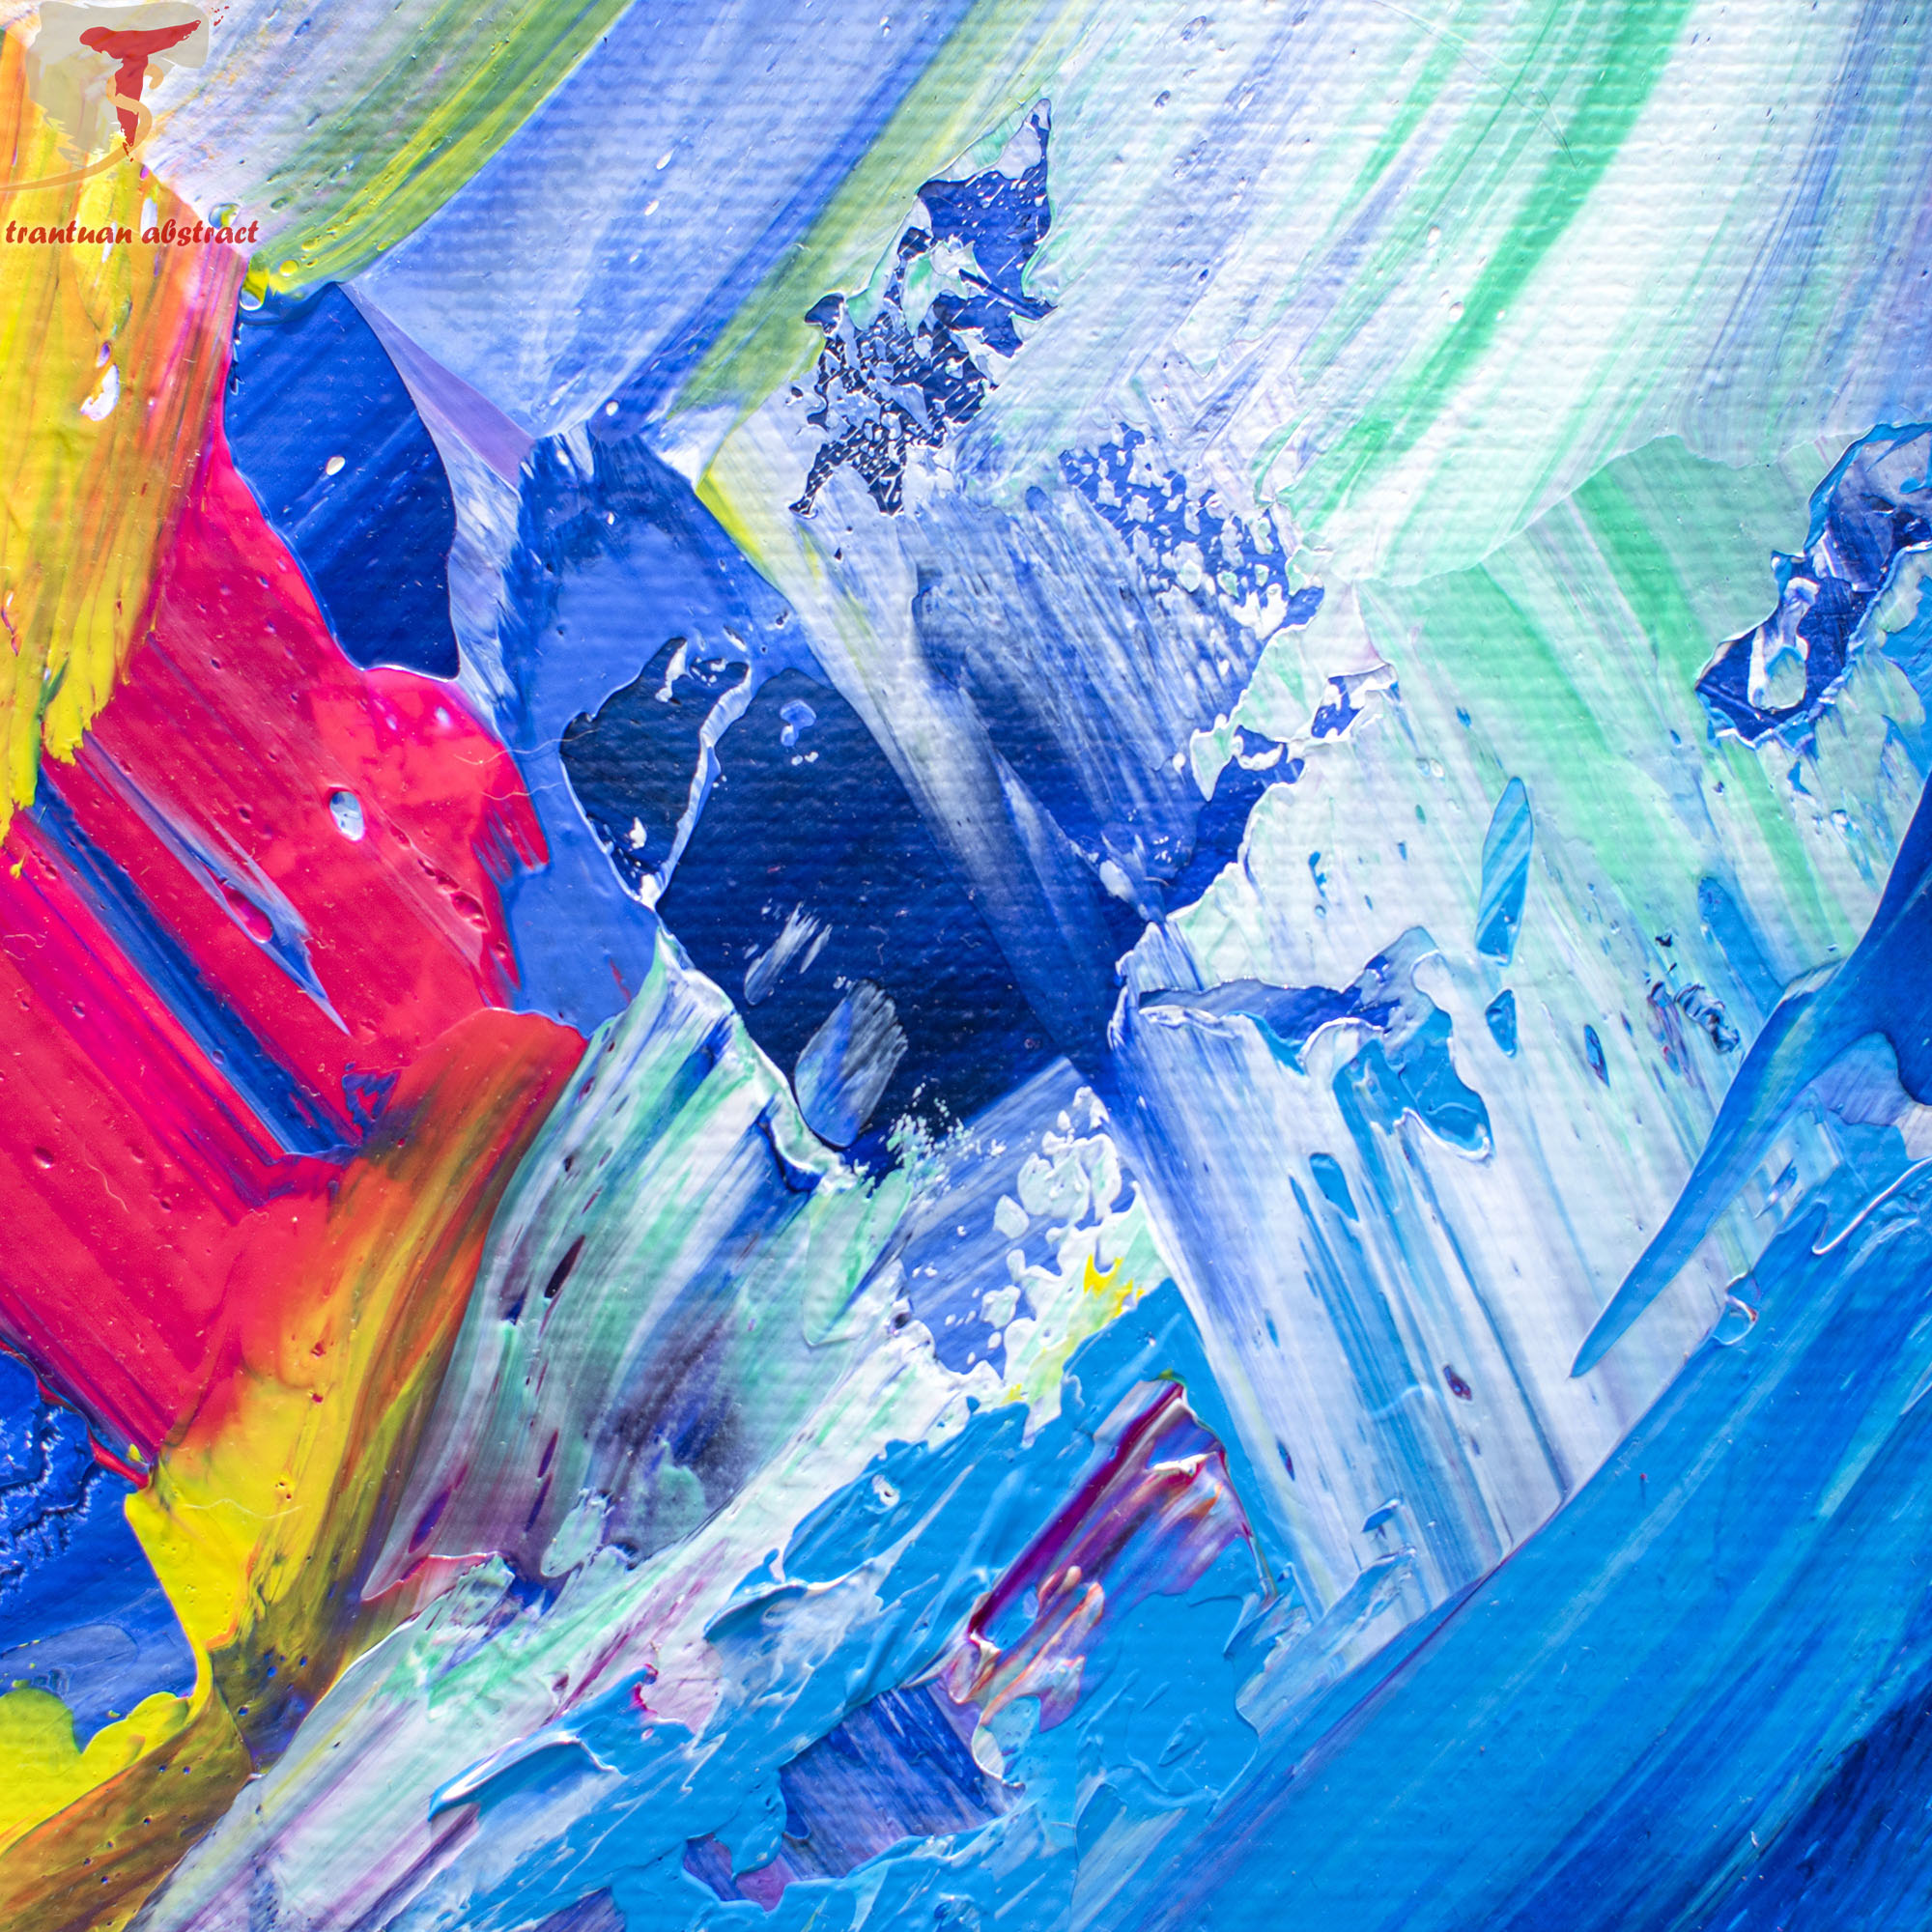 Tran Tuan Abstract Childhood Games 2021 135 x 80 x 5 cm Acrylic on Canvas Painting Detail